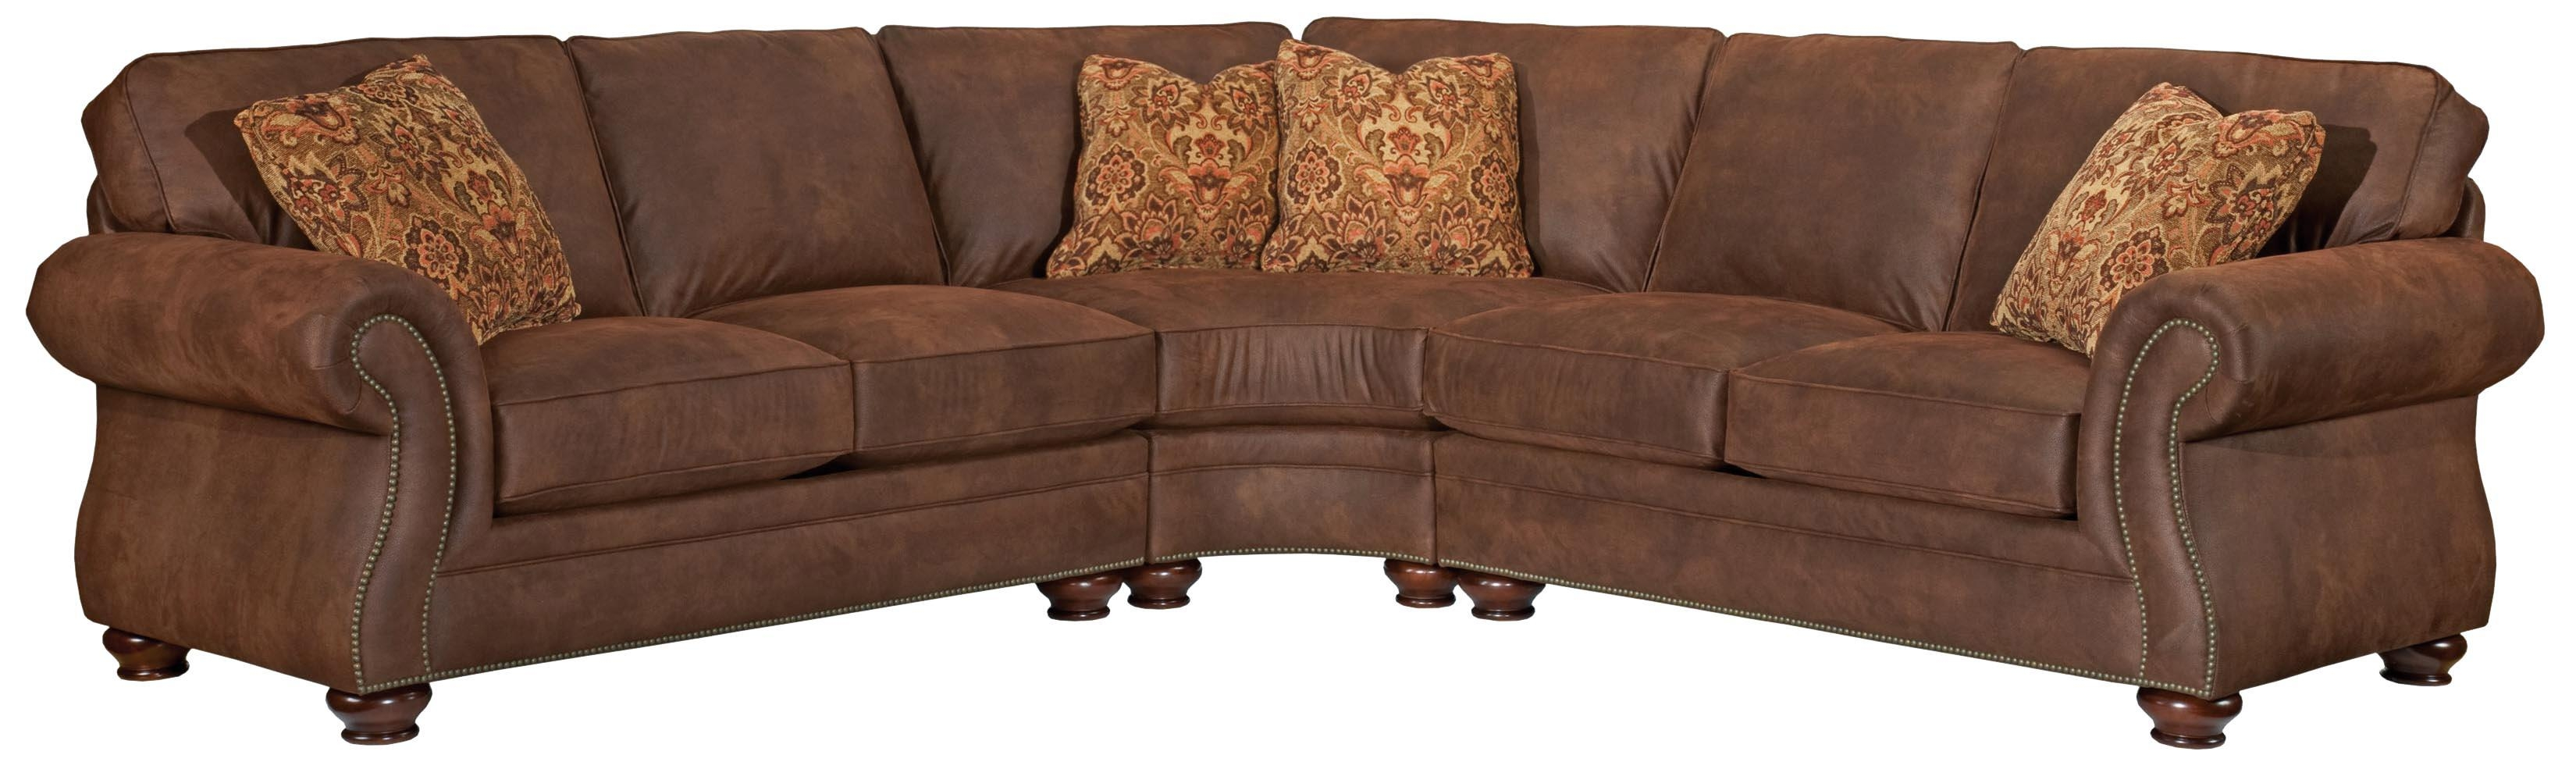 Featured Image of Broyhill Sectional Sofa